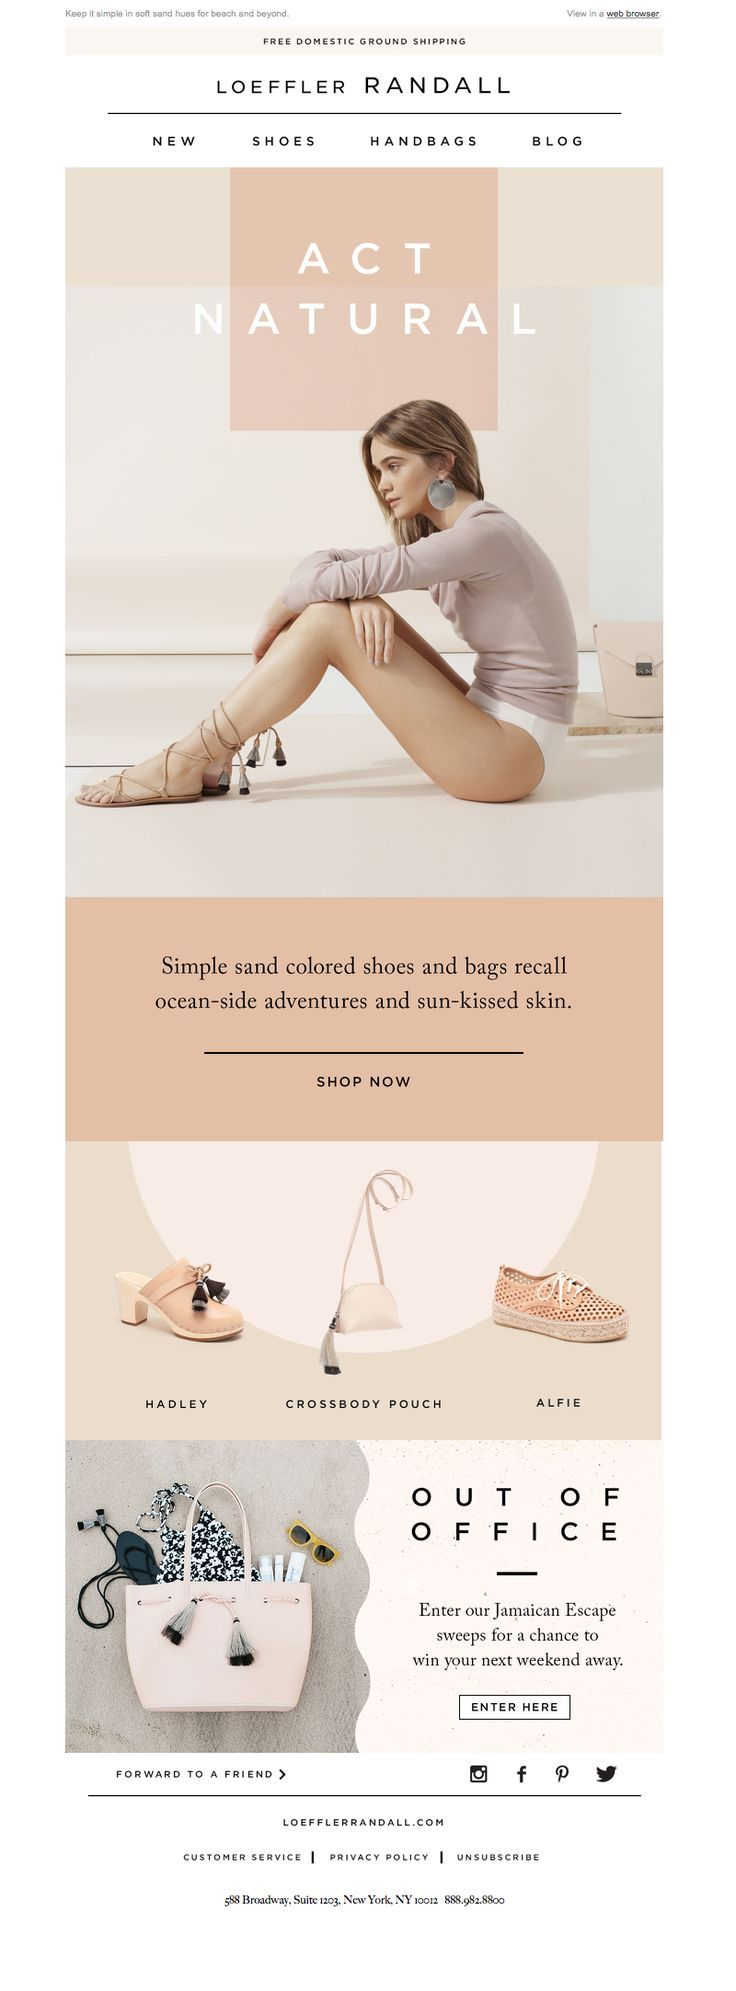 Loeffler Randall - Sun's Out - Promotional Email Design. If you like UX, design, or design thinking, check out theuxblog.com